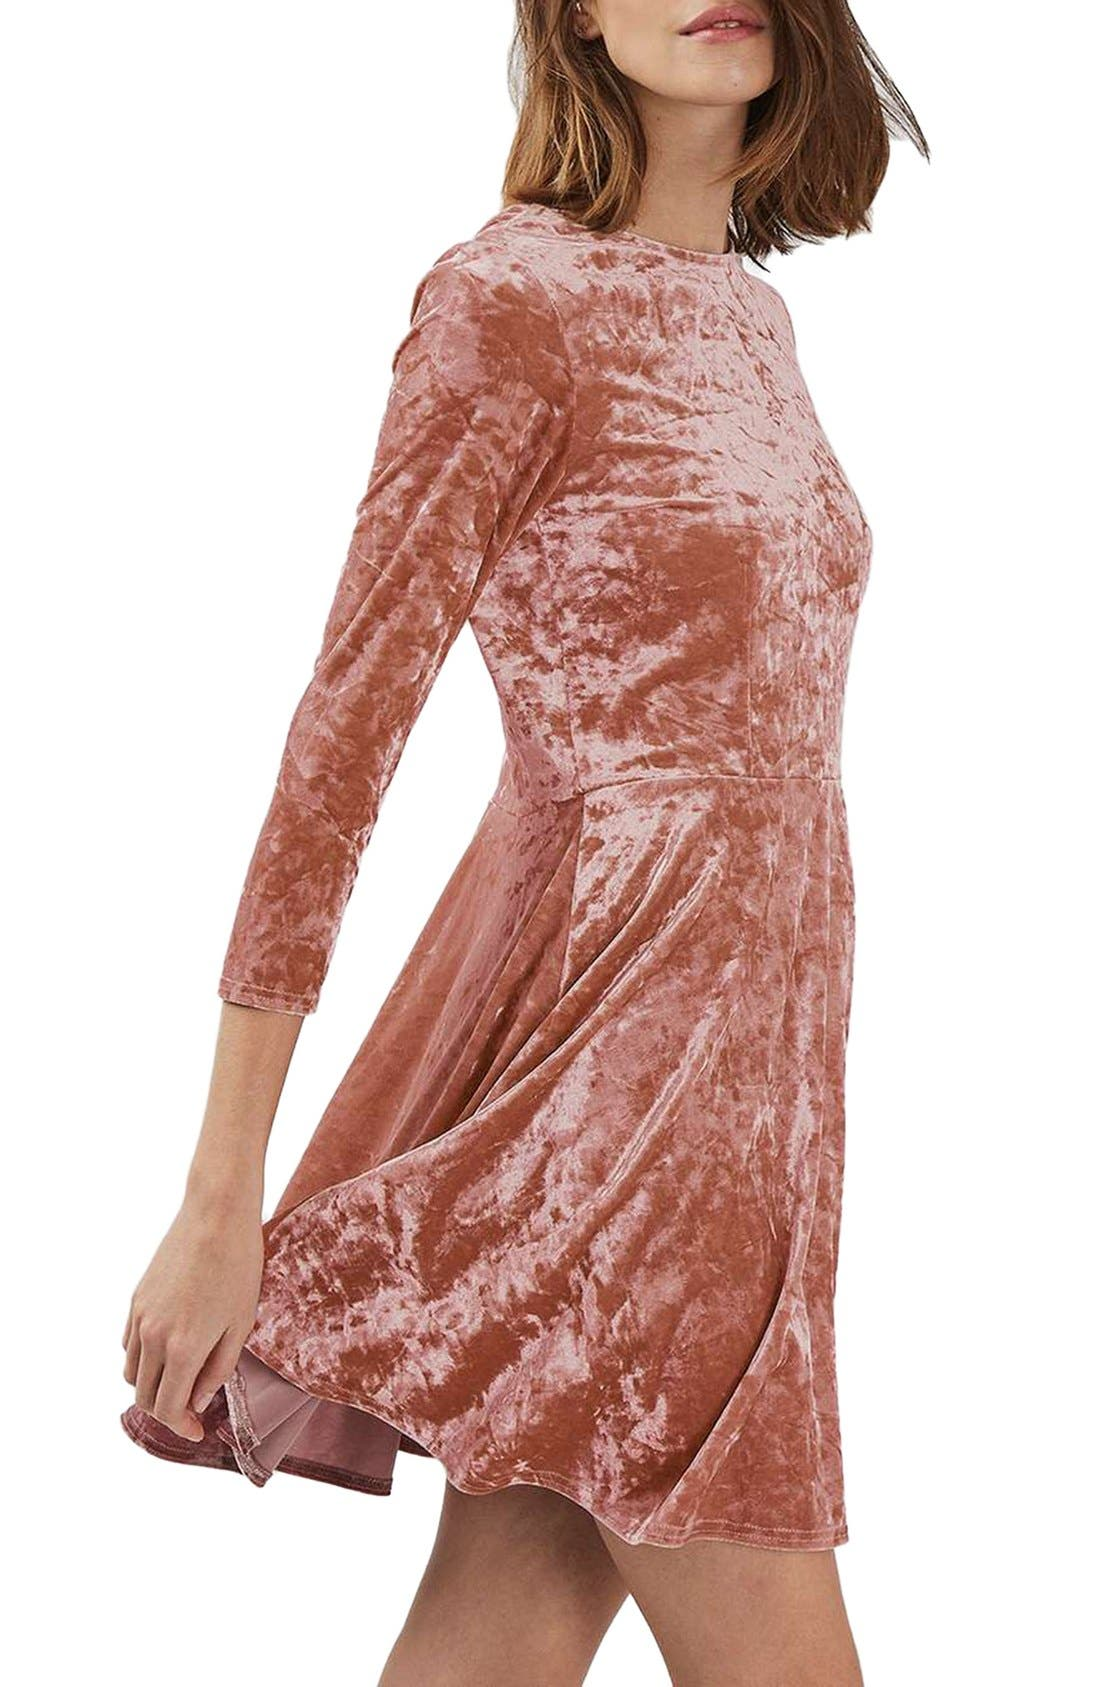 Crushed Velvet Dress,                             Main thumbnail 1, color,                             650